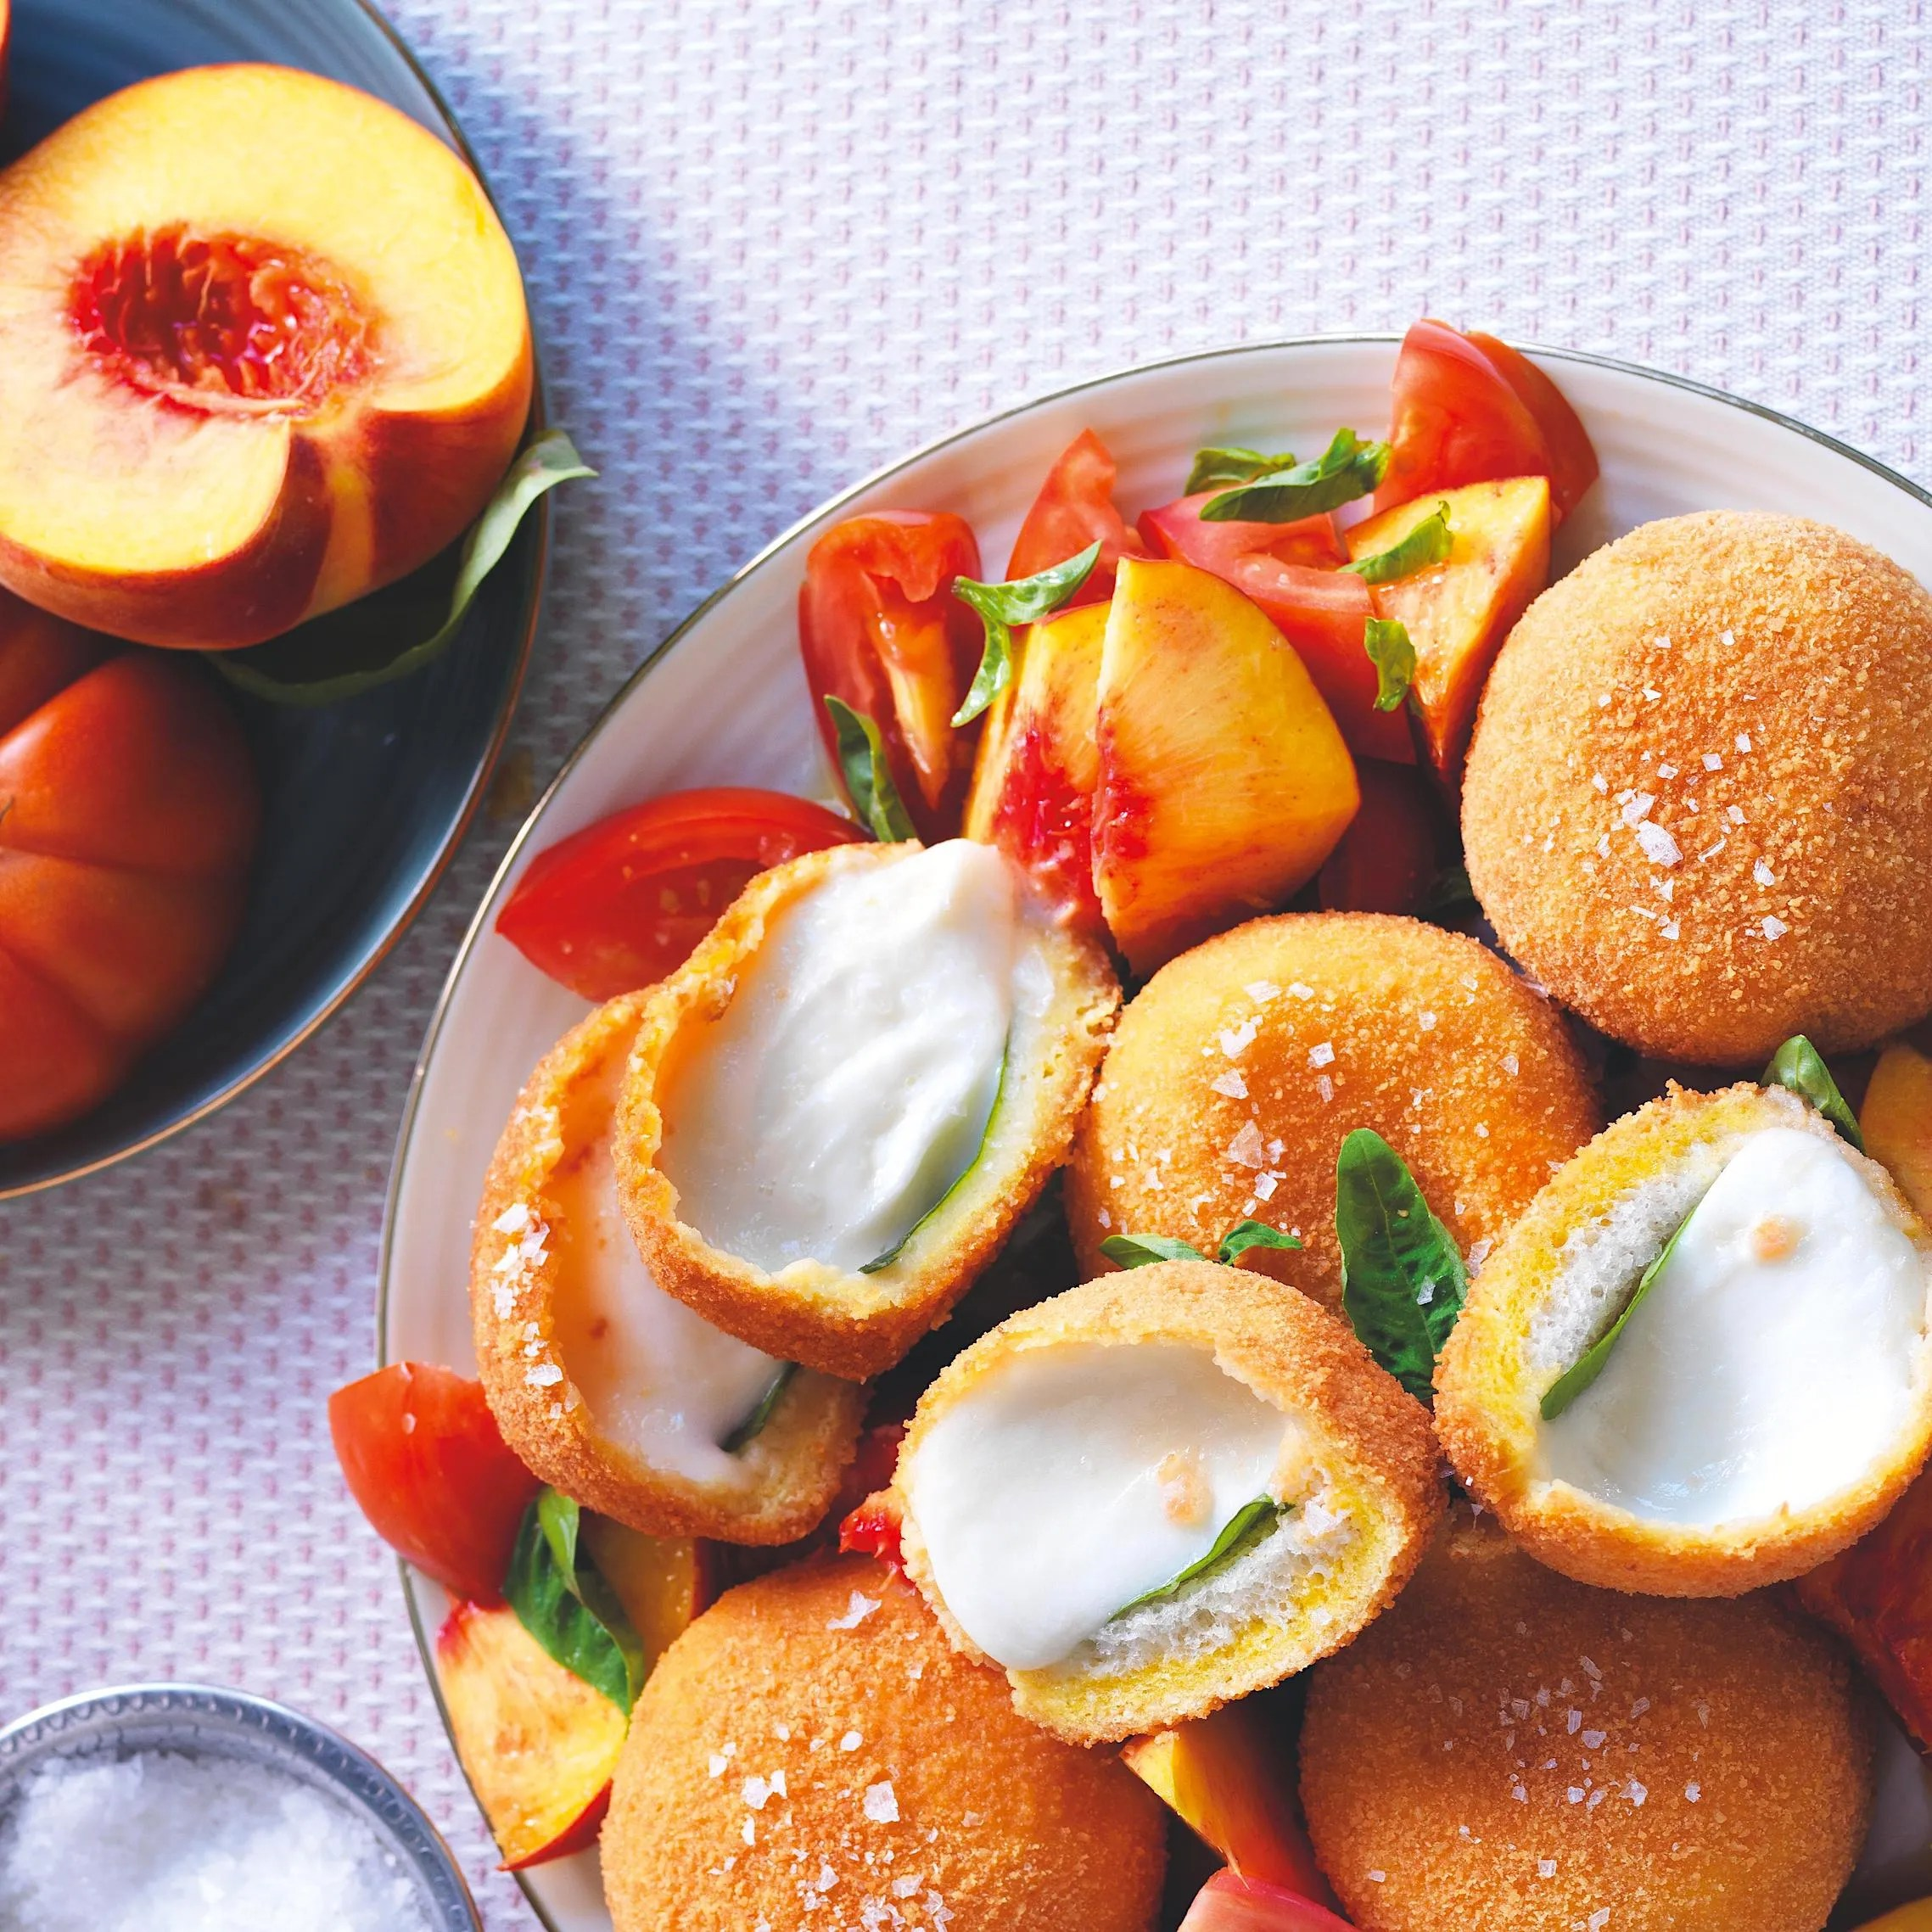 Delicious Peach Recipes From Sweet To Savory La Cucina Italiana